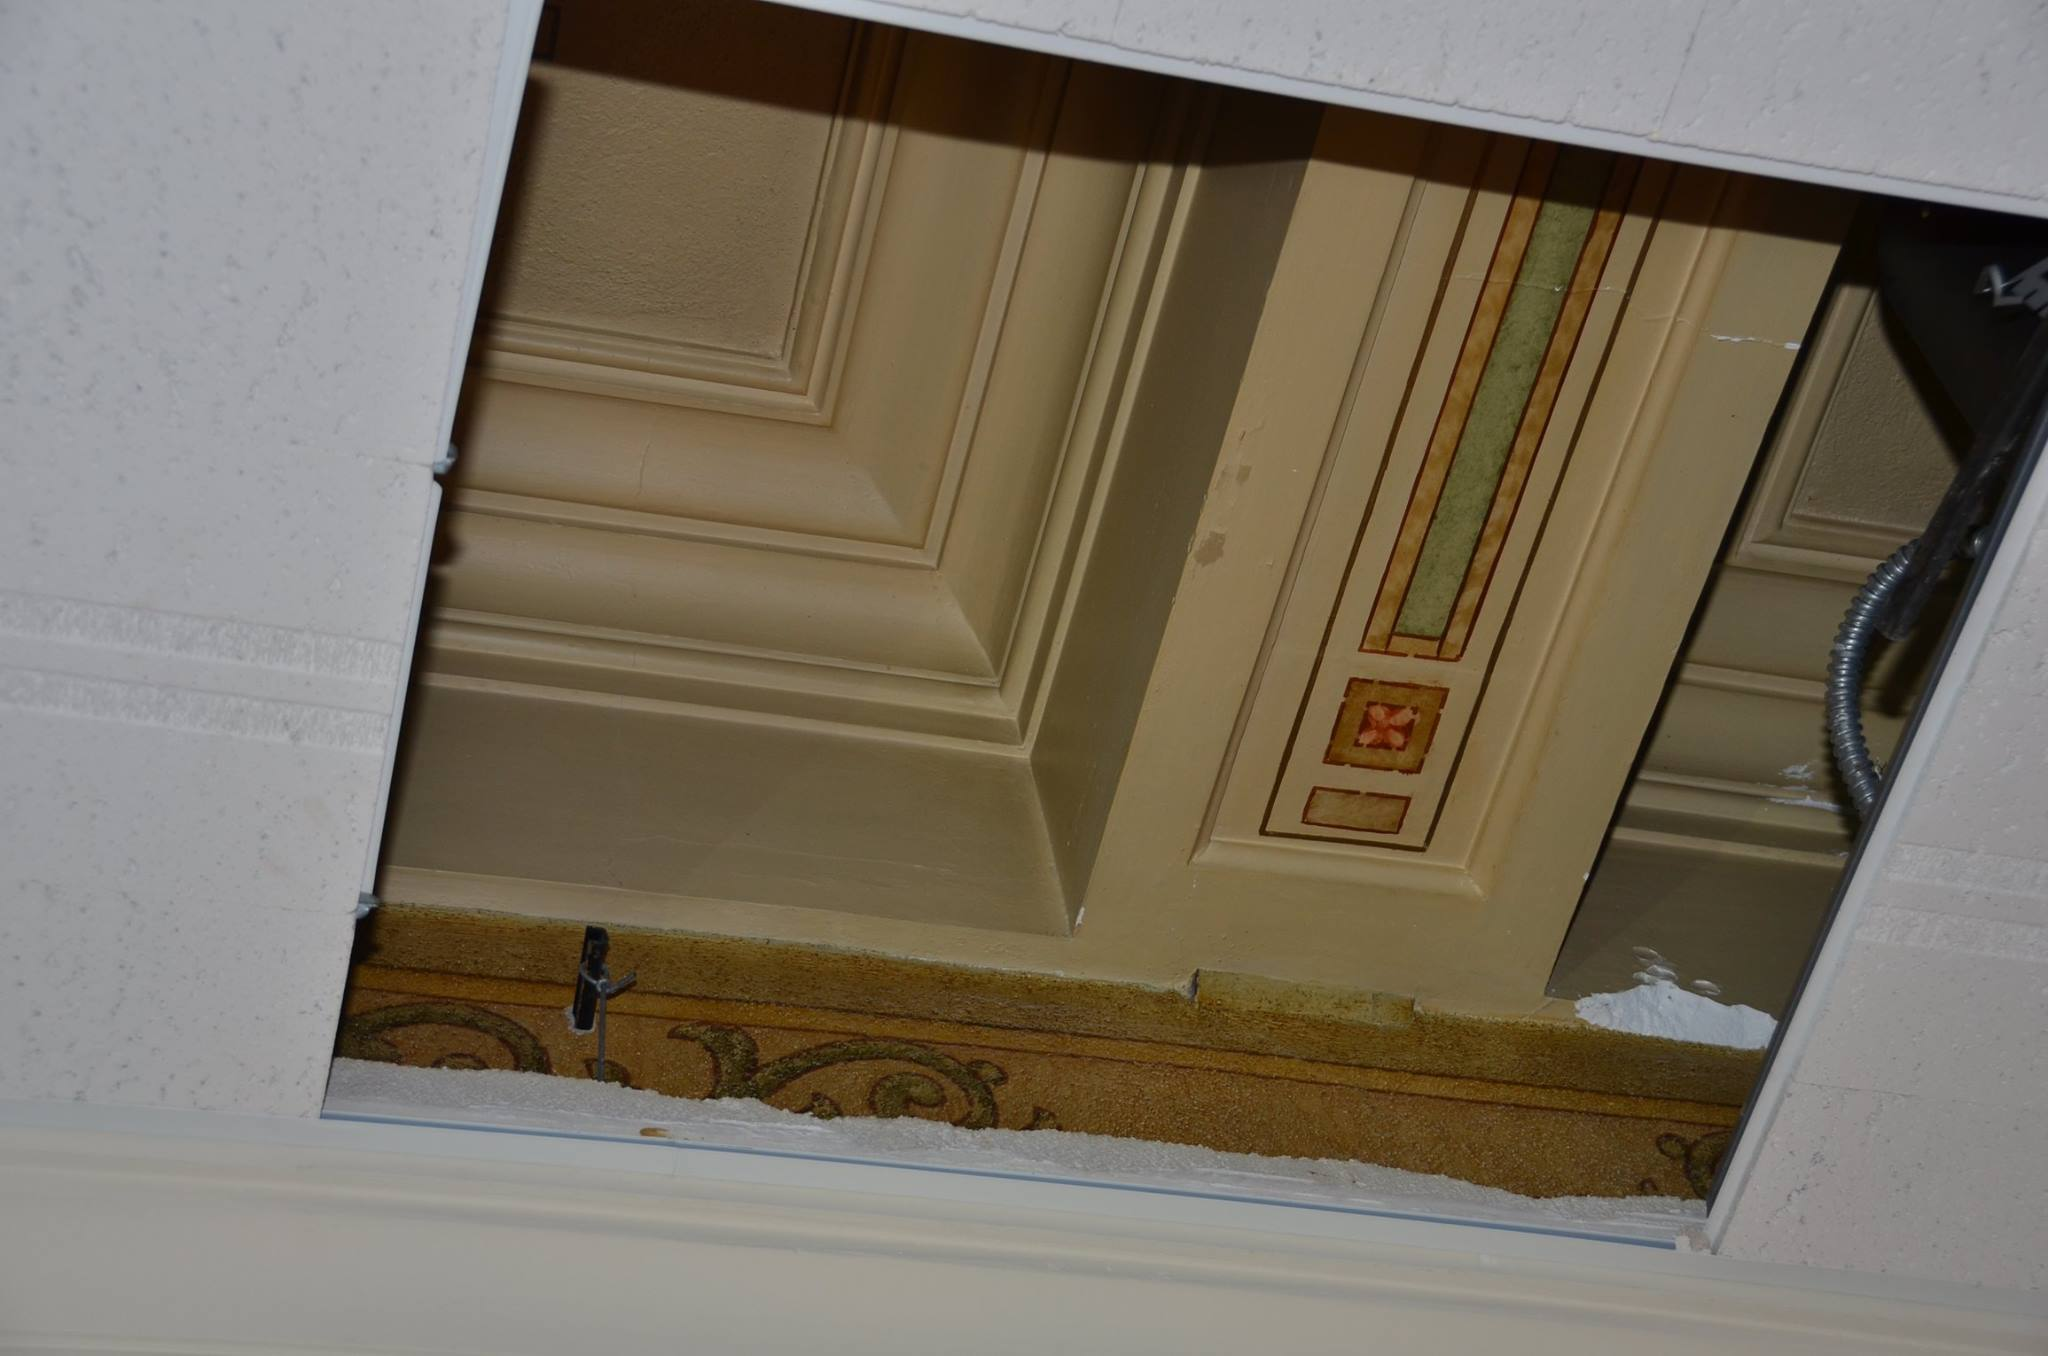 Historic Ceilings Hidden Above Suspended Ceiling Tiles